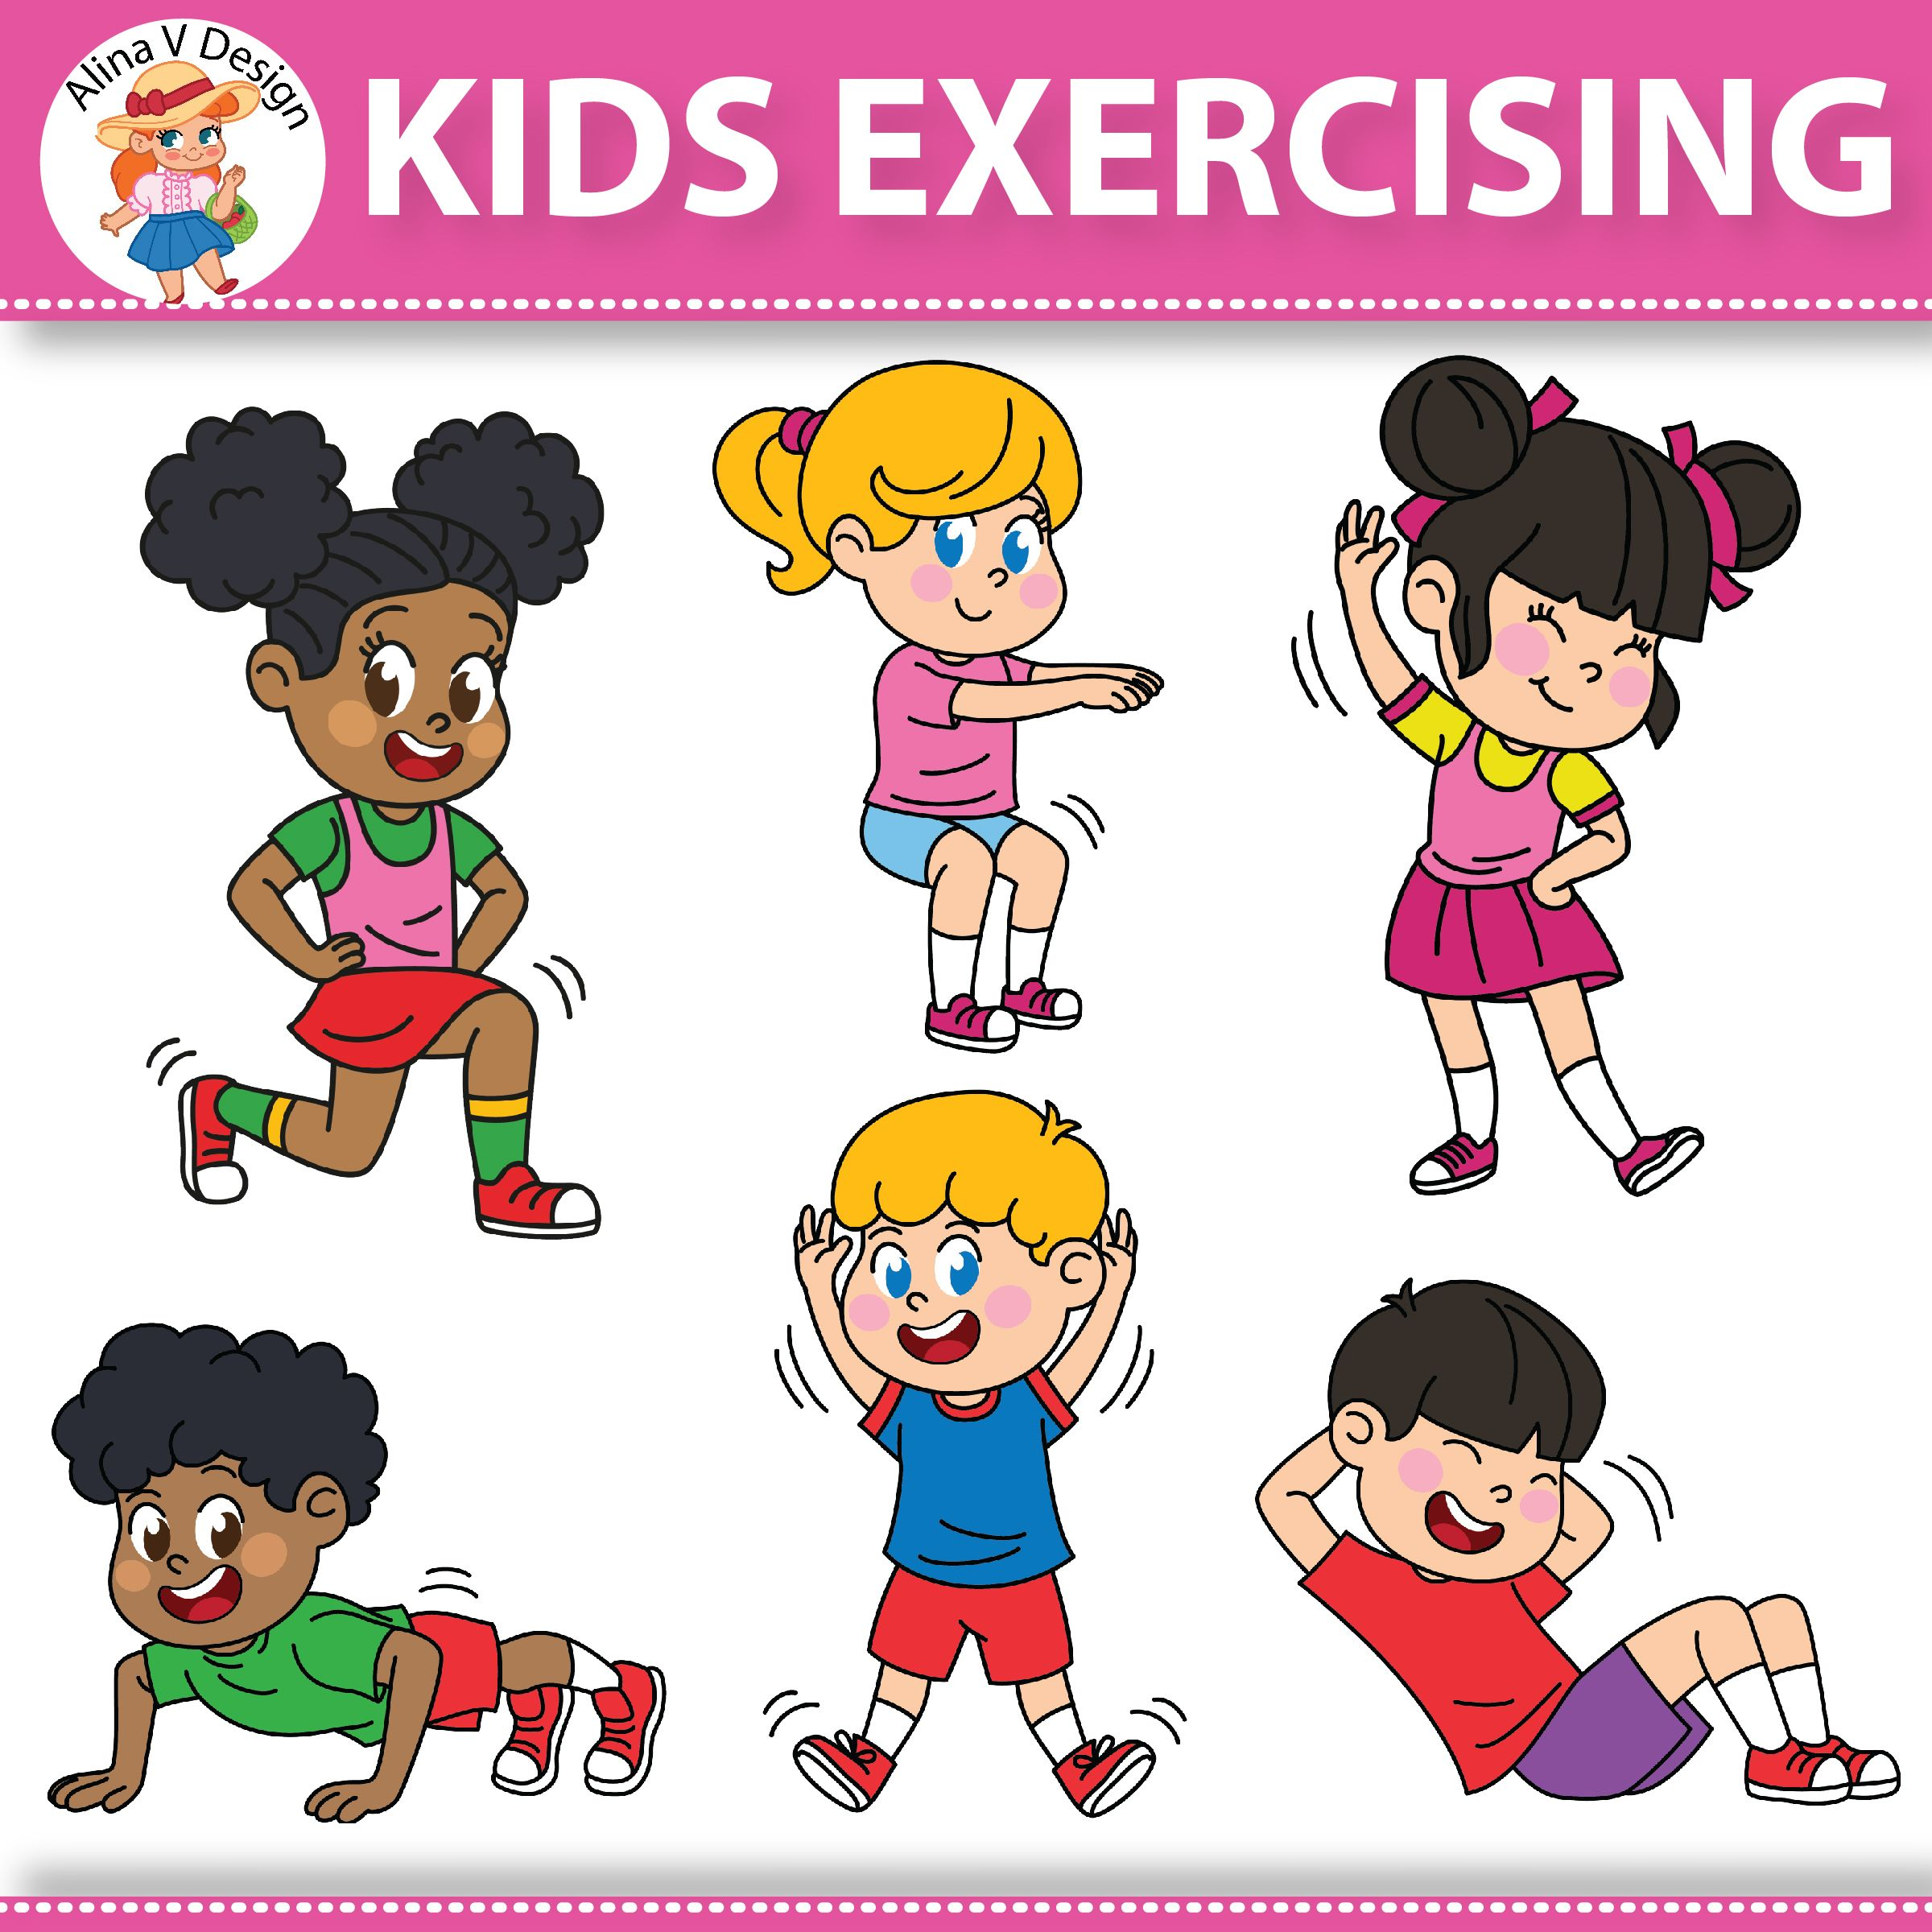 medium resolution of kids exercising exercises workout